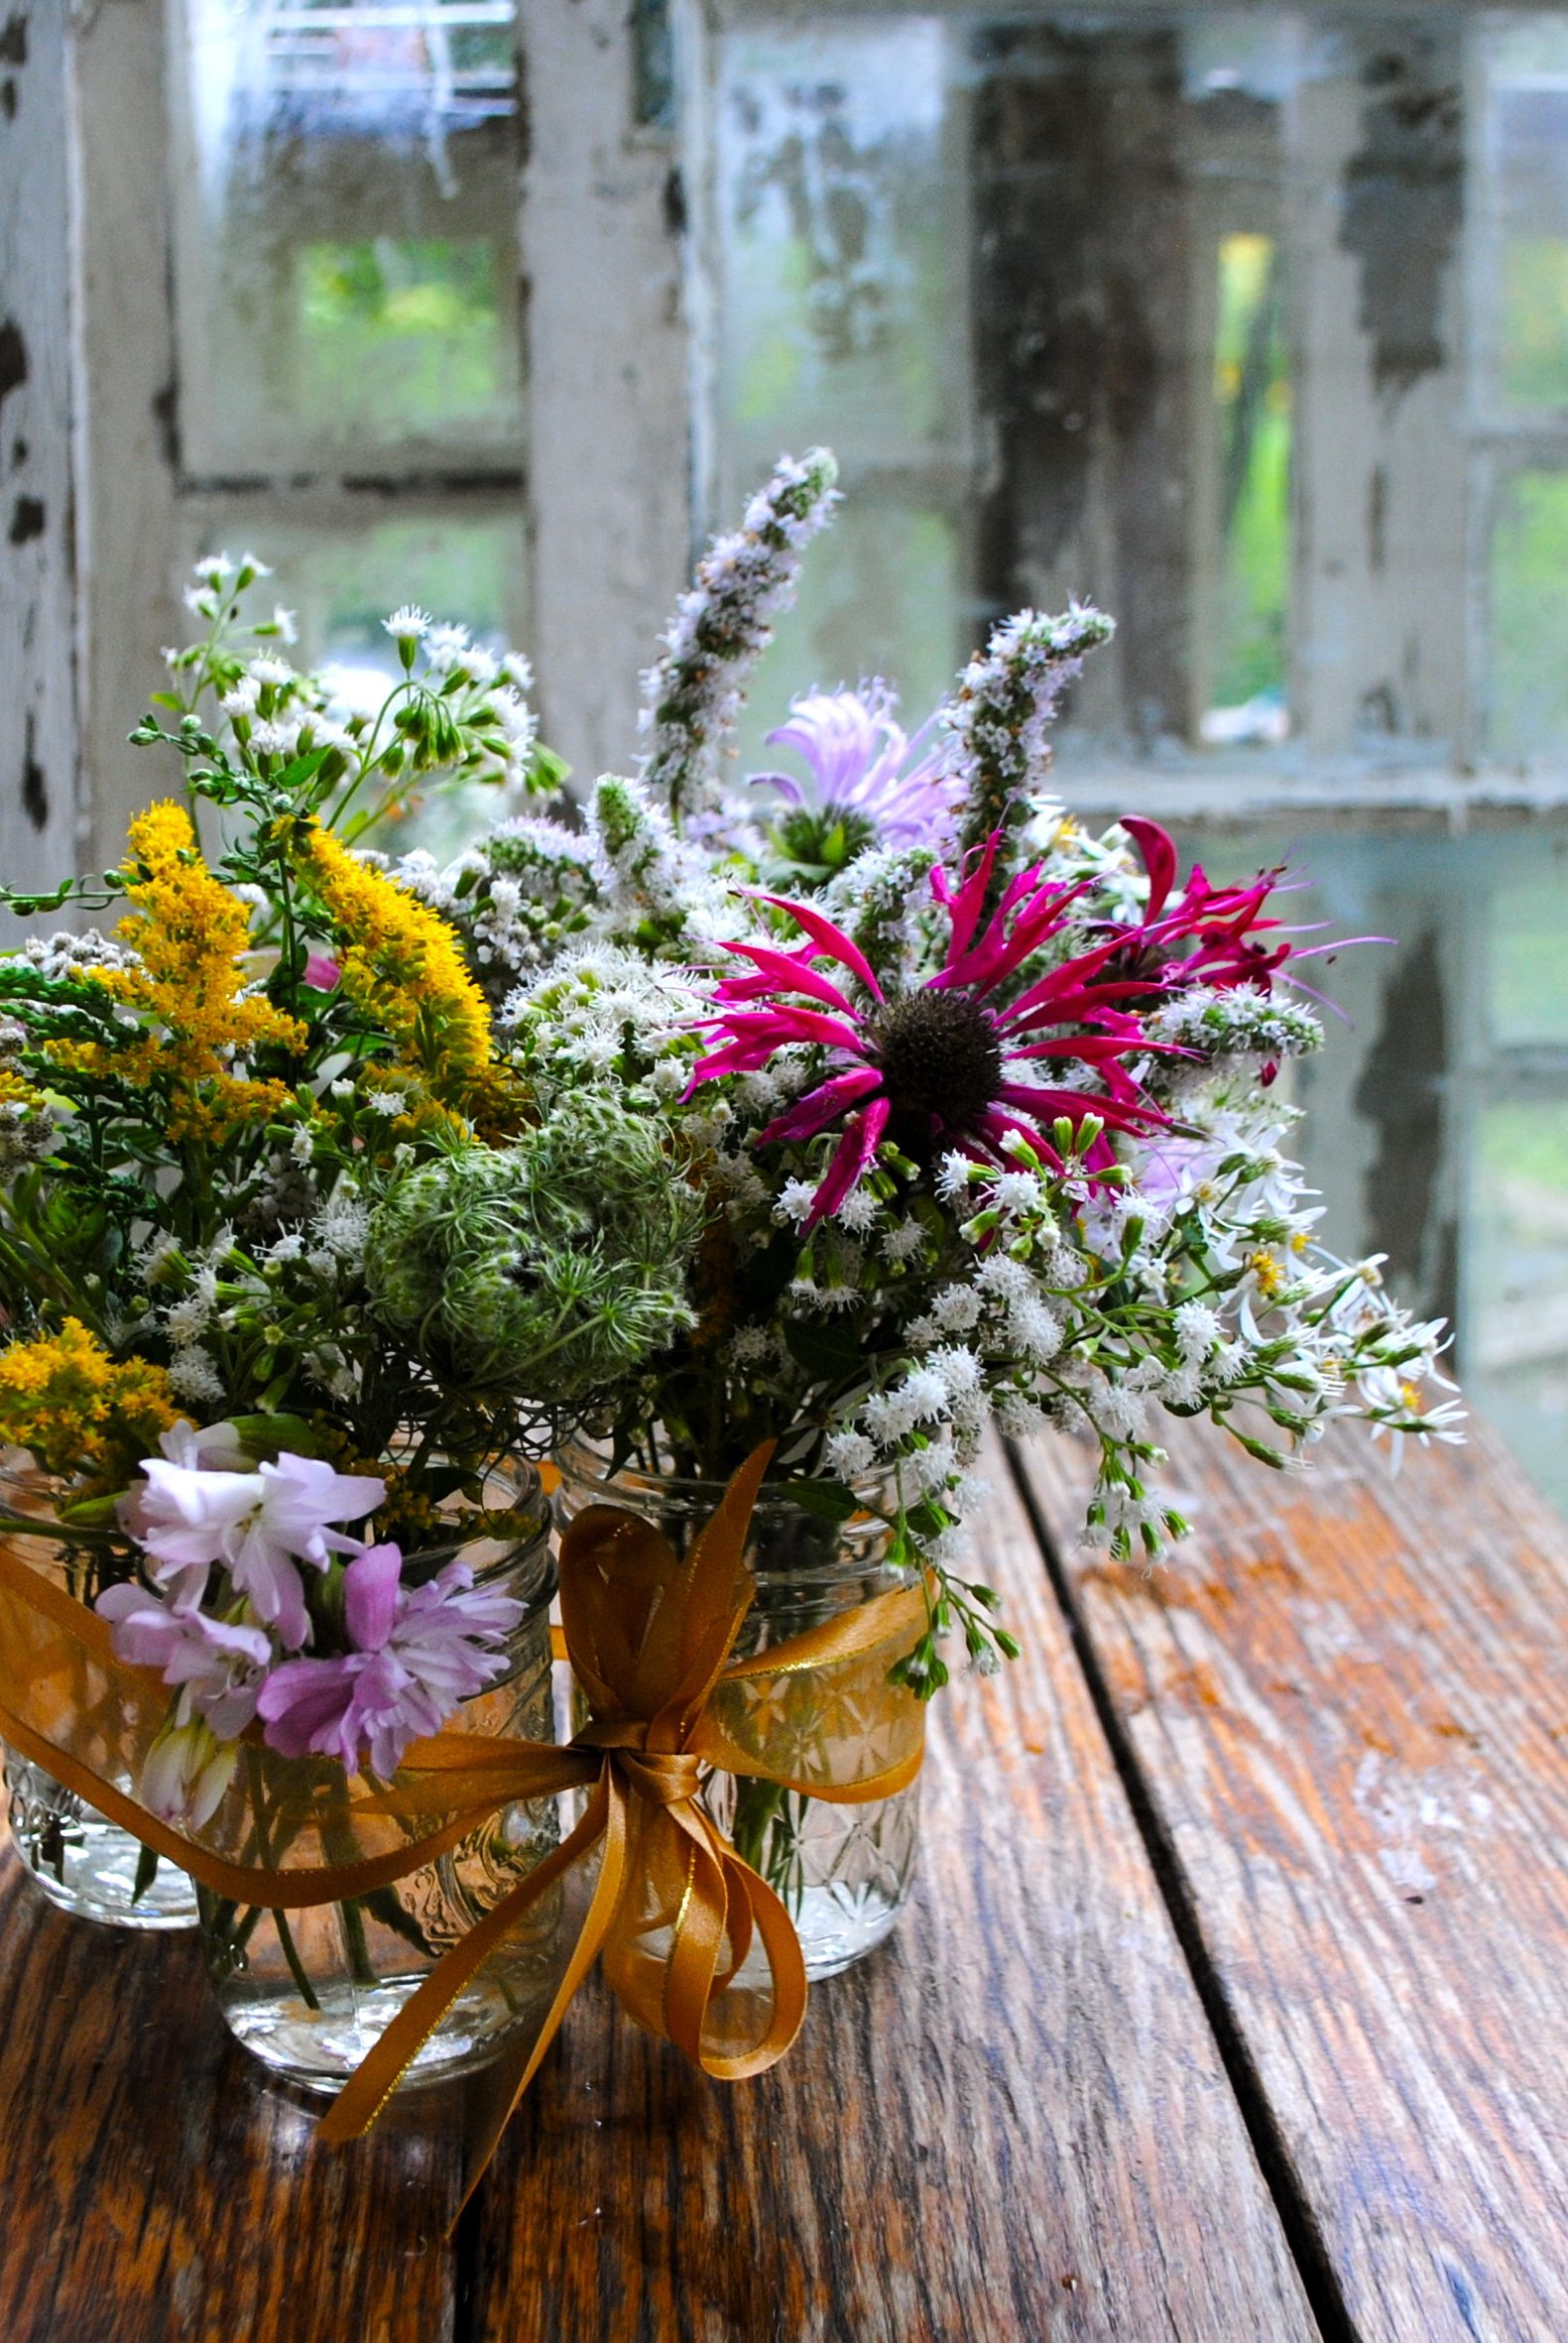 Grouped Arrangement Of August To Late September Blooms By Rachel Andre Of William S Wildflowers New York Pretty Flowers Wild Flowers Grow Wildflowers